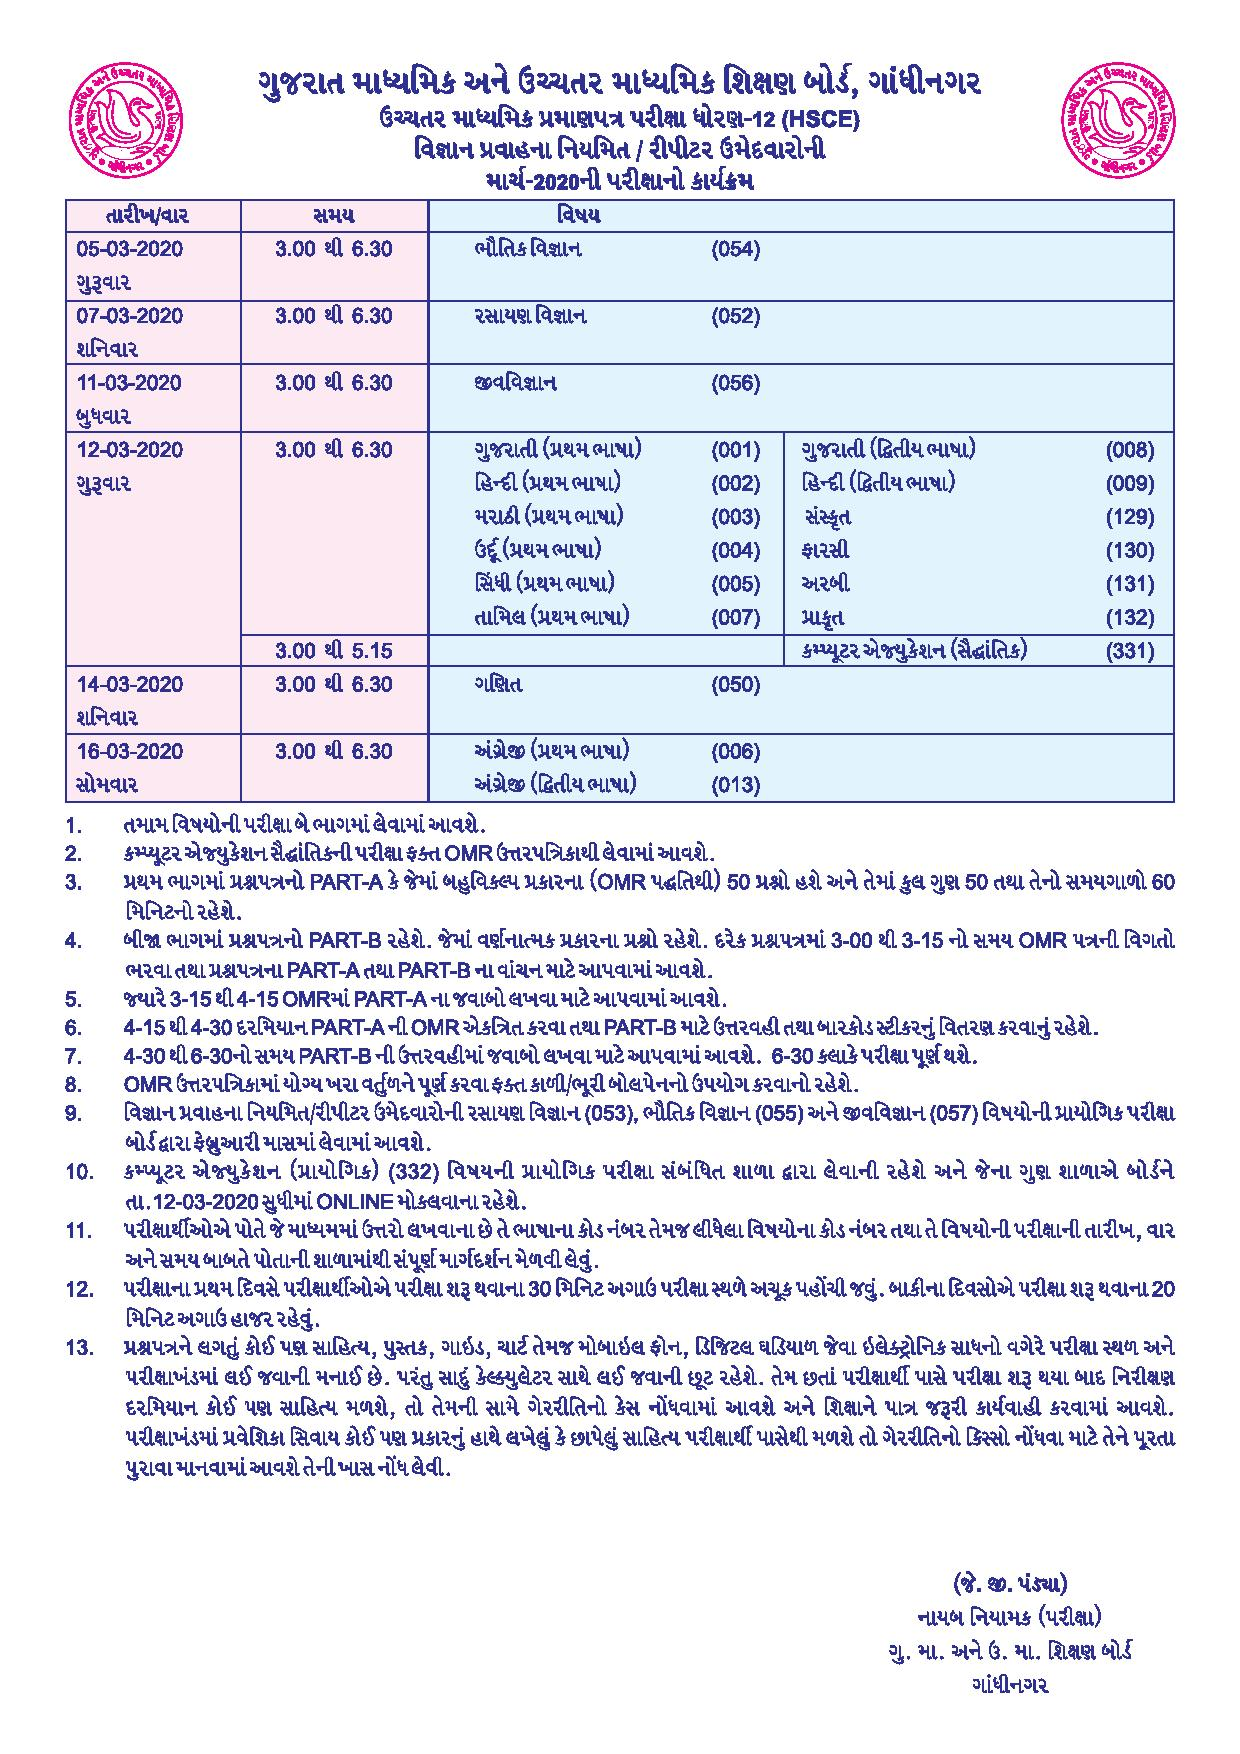 GSEB 10th & 12th Schedule 2020